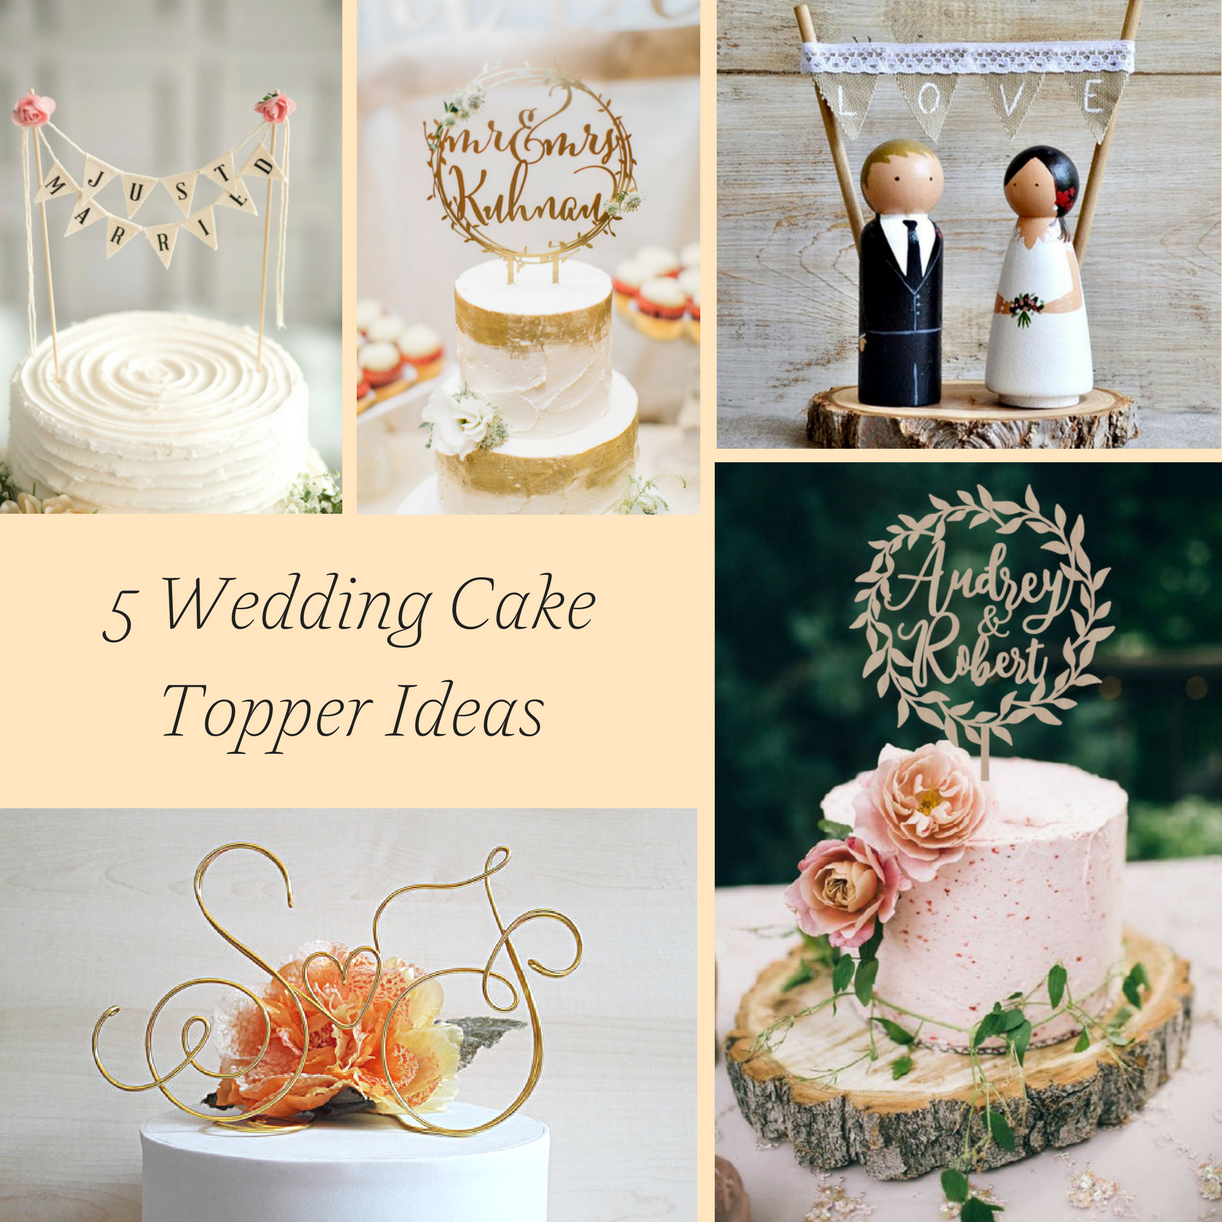 5 Wedding Cake Topper Ideas Hill City Bride